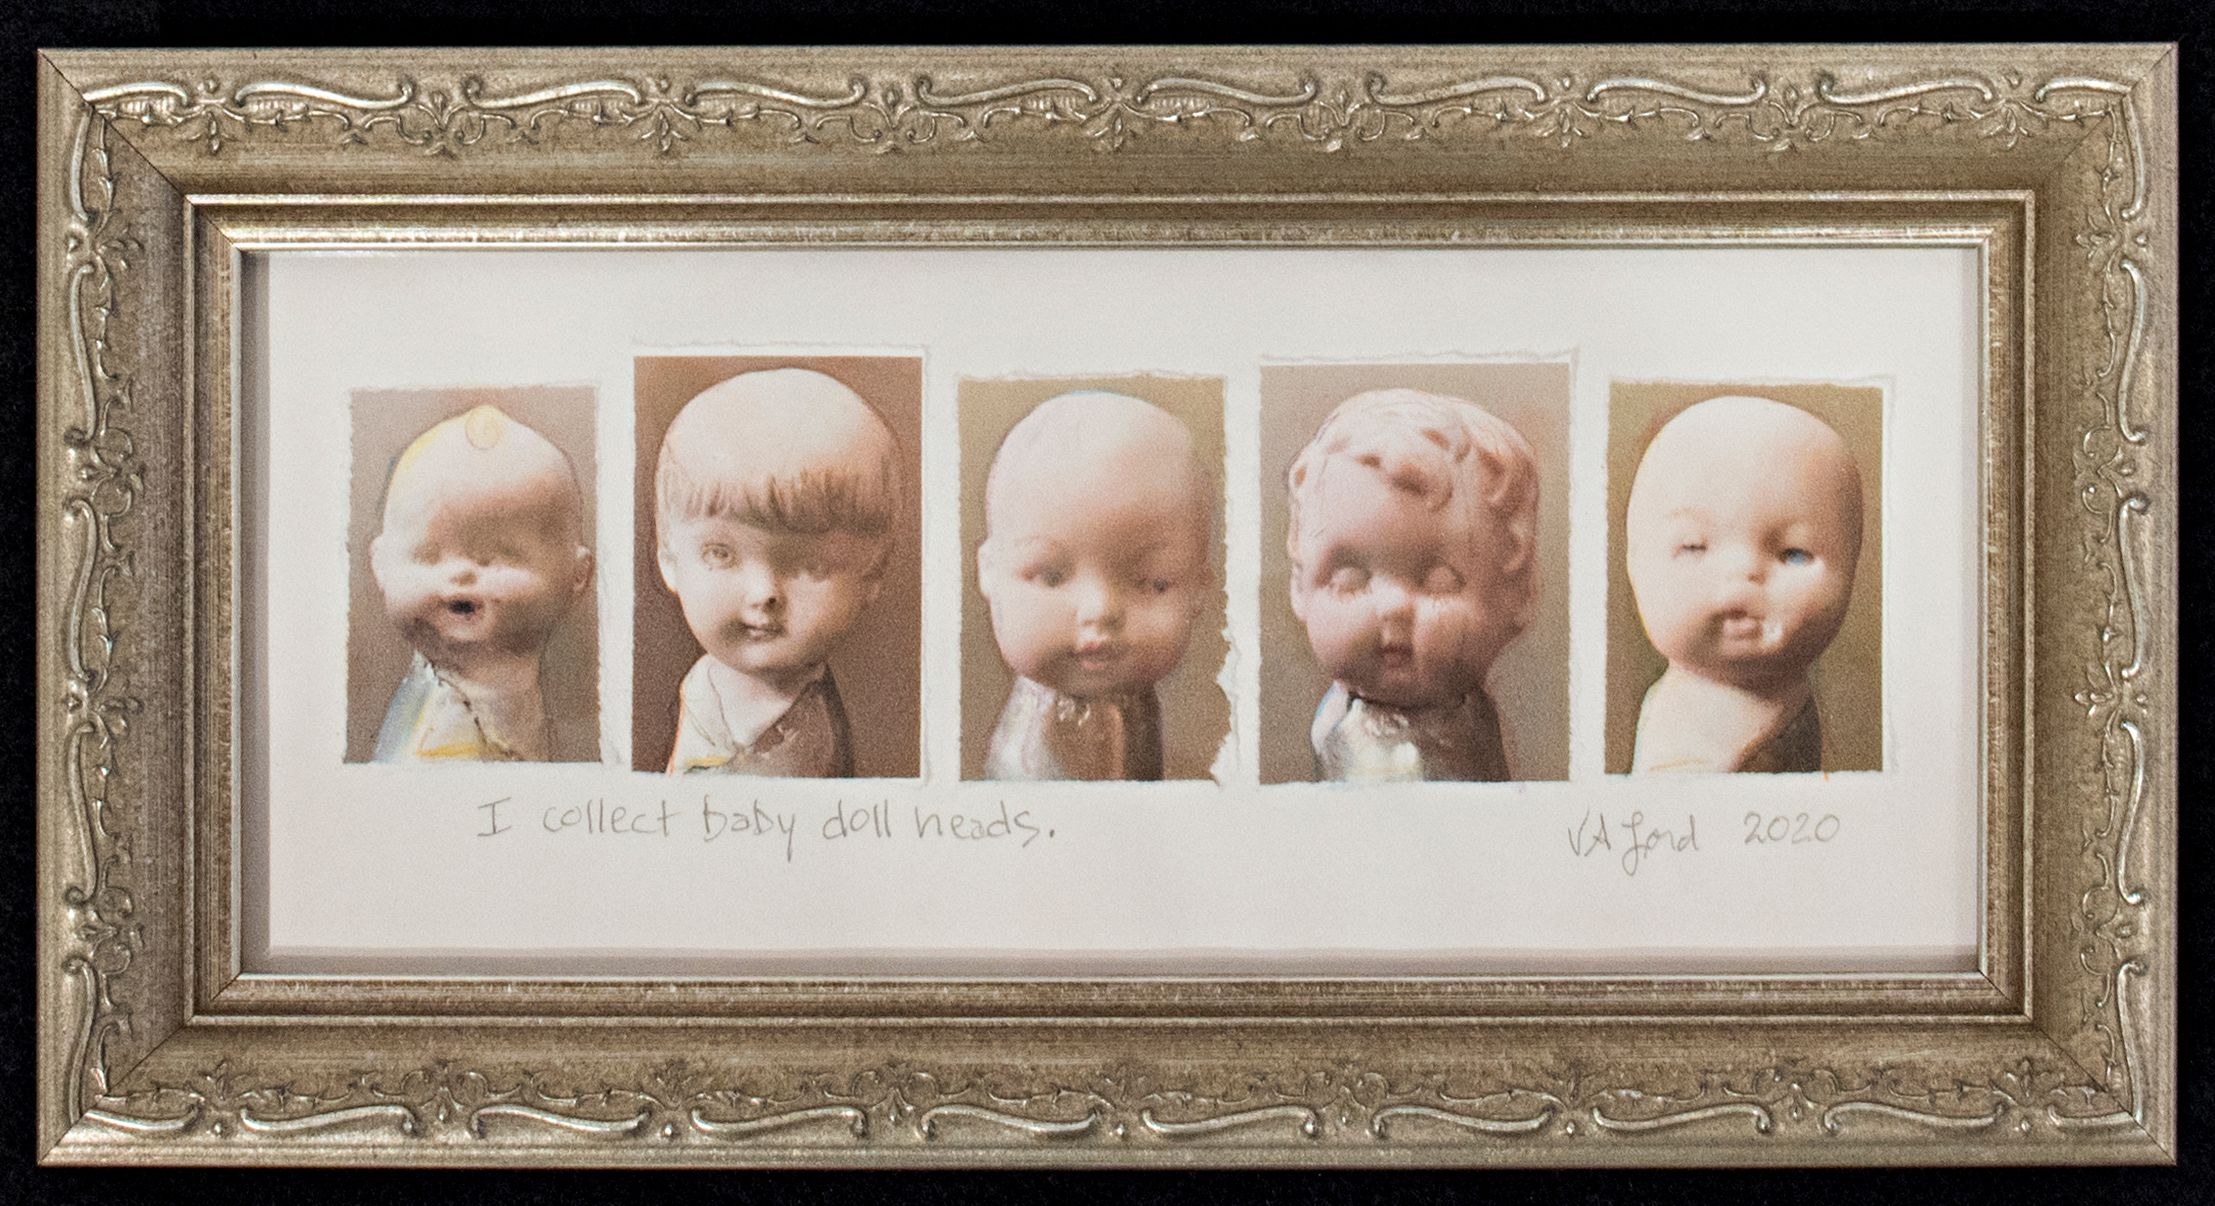 I Collect Baby Doll Heads